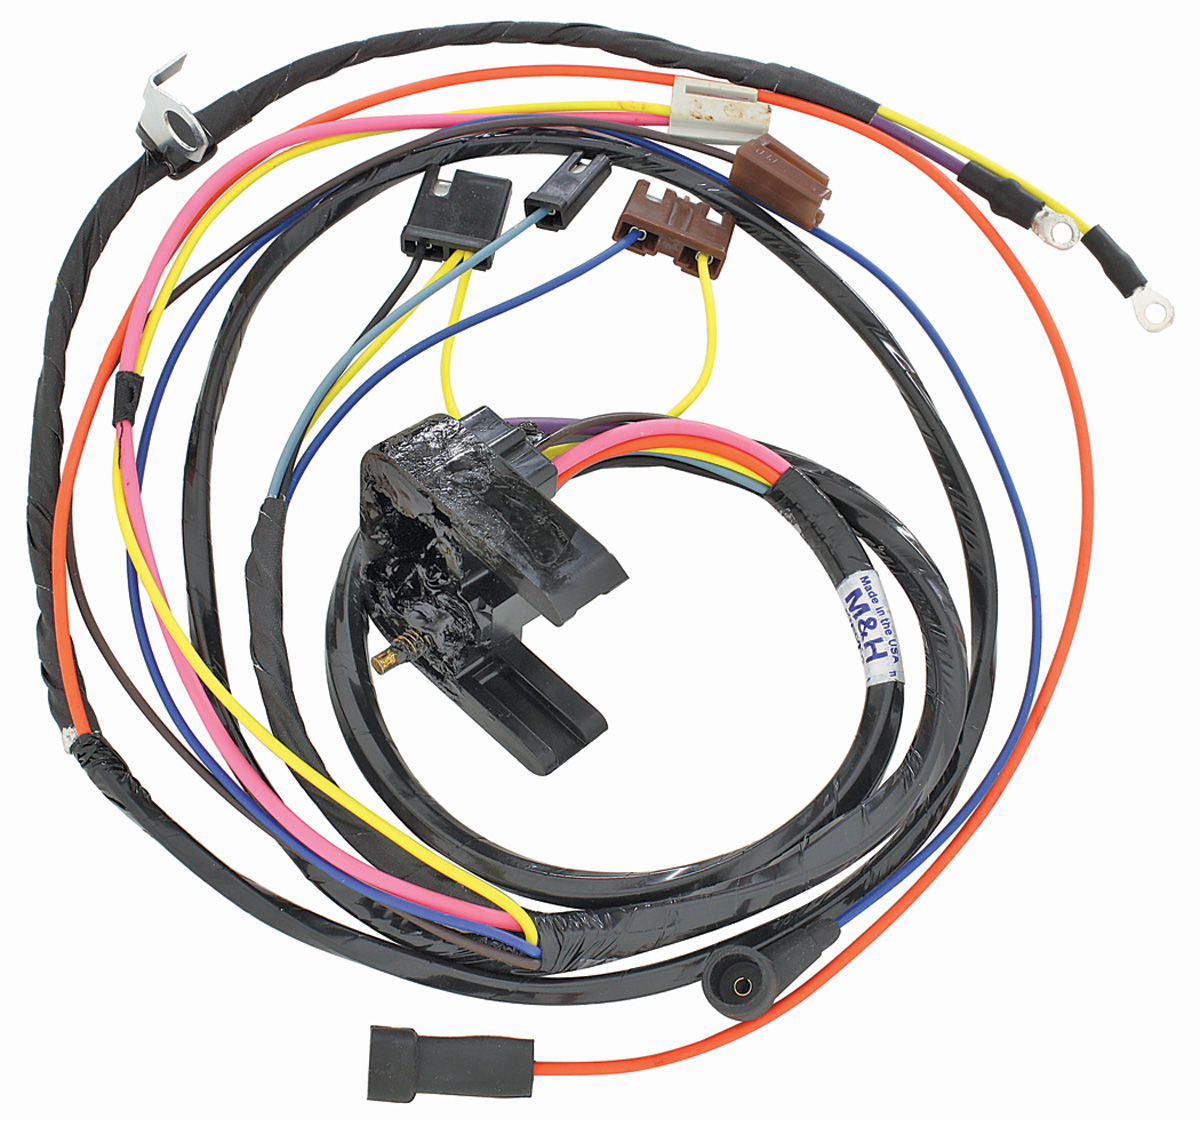 38939 lrg m&h 1969 el camino engine harness 396 hei w gauges @ opgi com 1971 El Camino Wiring Harness at mifinder.co